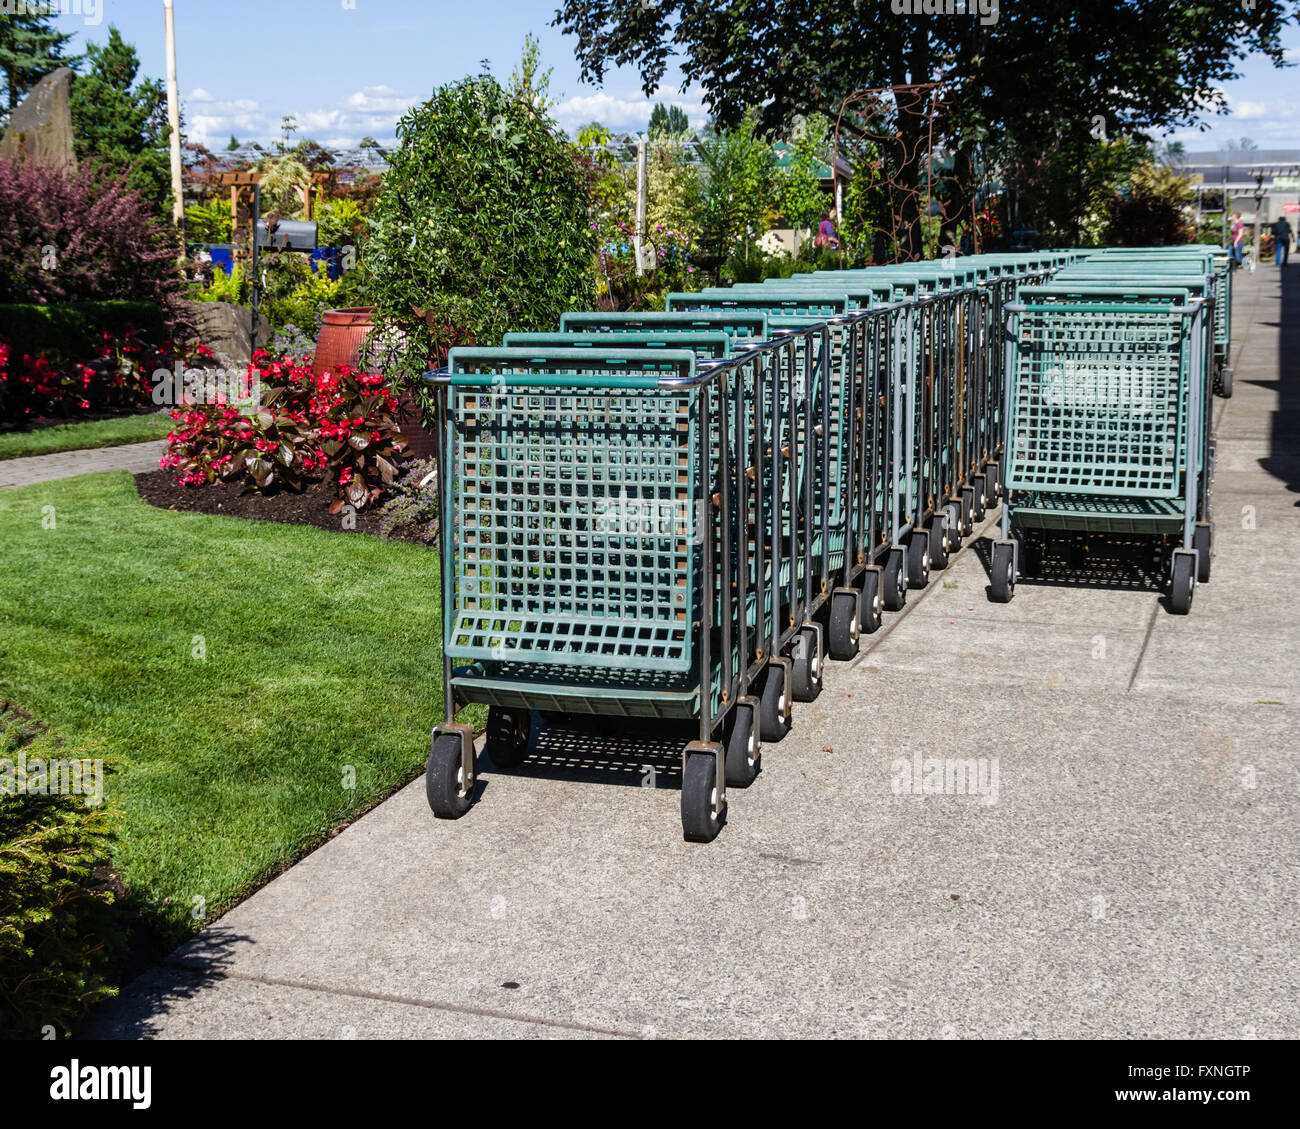 Group Of Shopping Carts Or